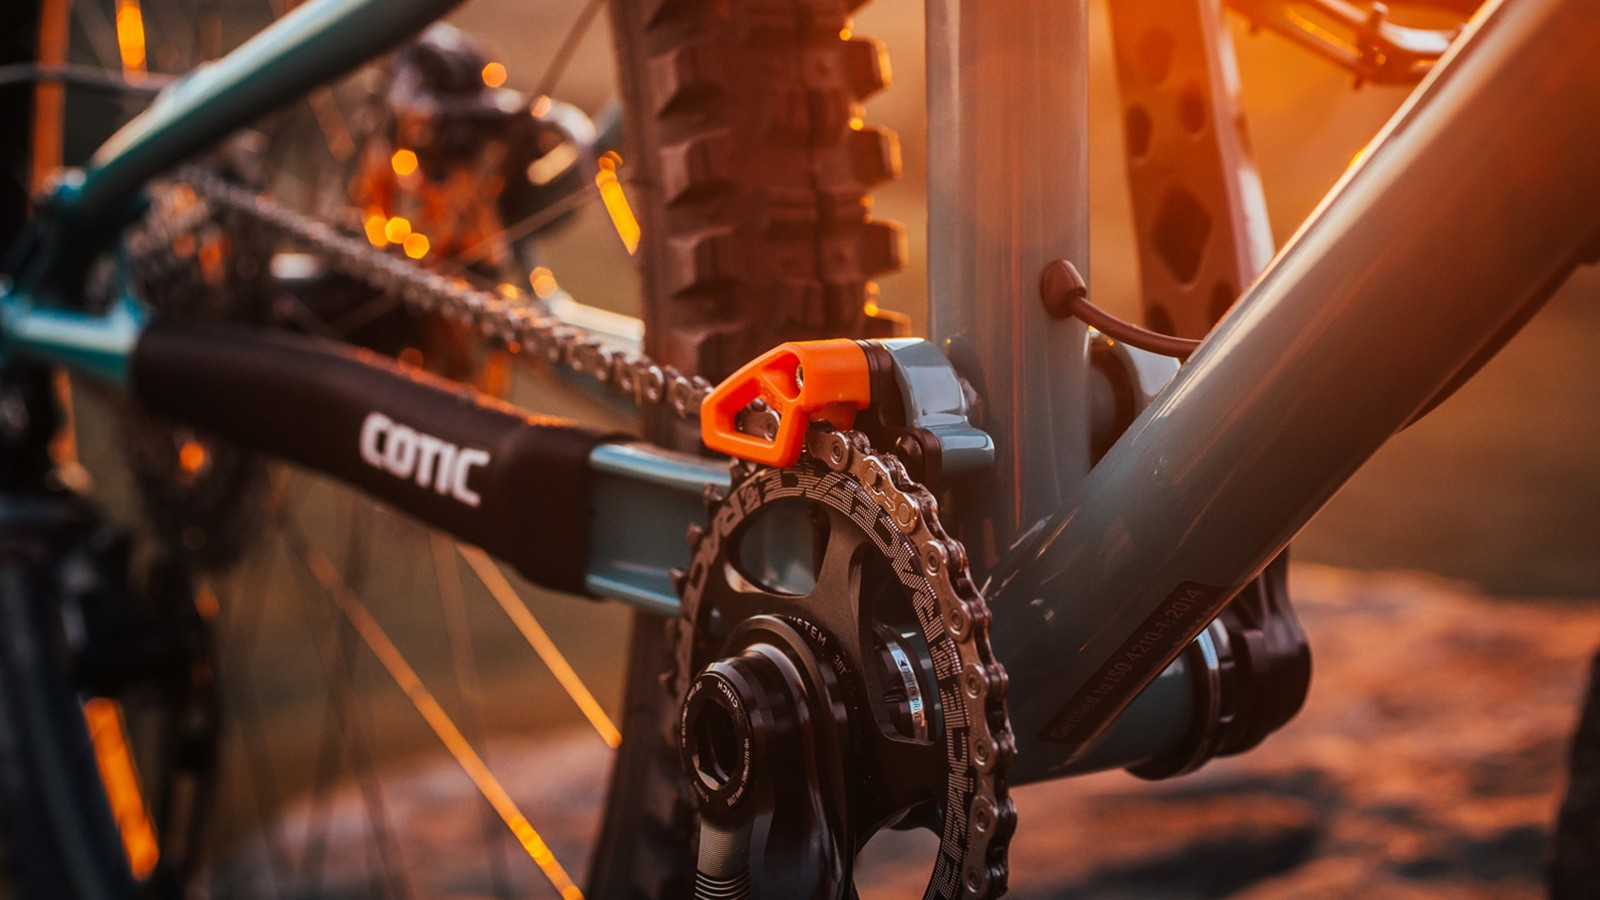 The frame has an integrated chain guide mount